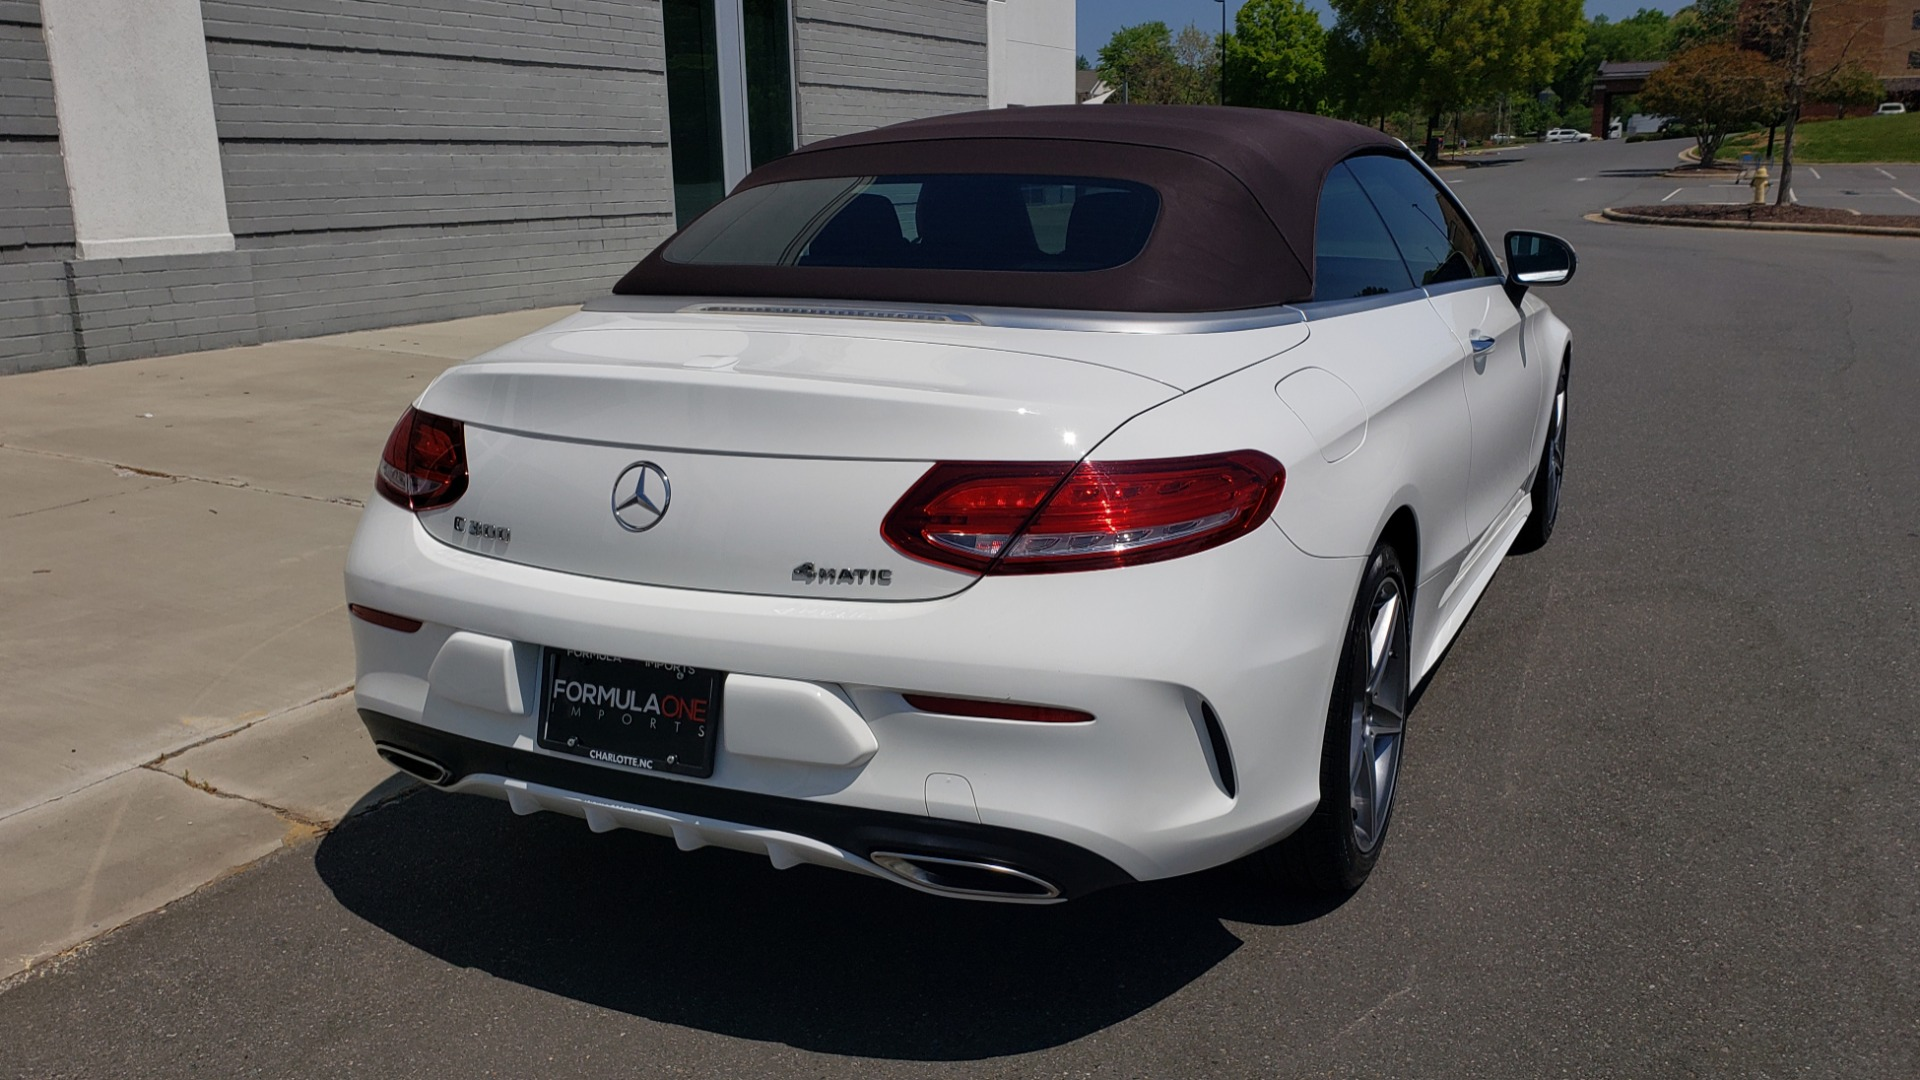 Used 2018 Mercedes-Benz C-CLASS C 300 CABRIOLET PREMIUM / AWD / BURMESTER SND / APPLE / REARVIEW for sale $44,995 at Formula Imports in Charlotte NC 28227 16